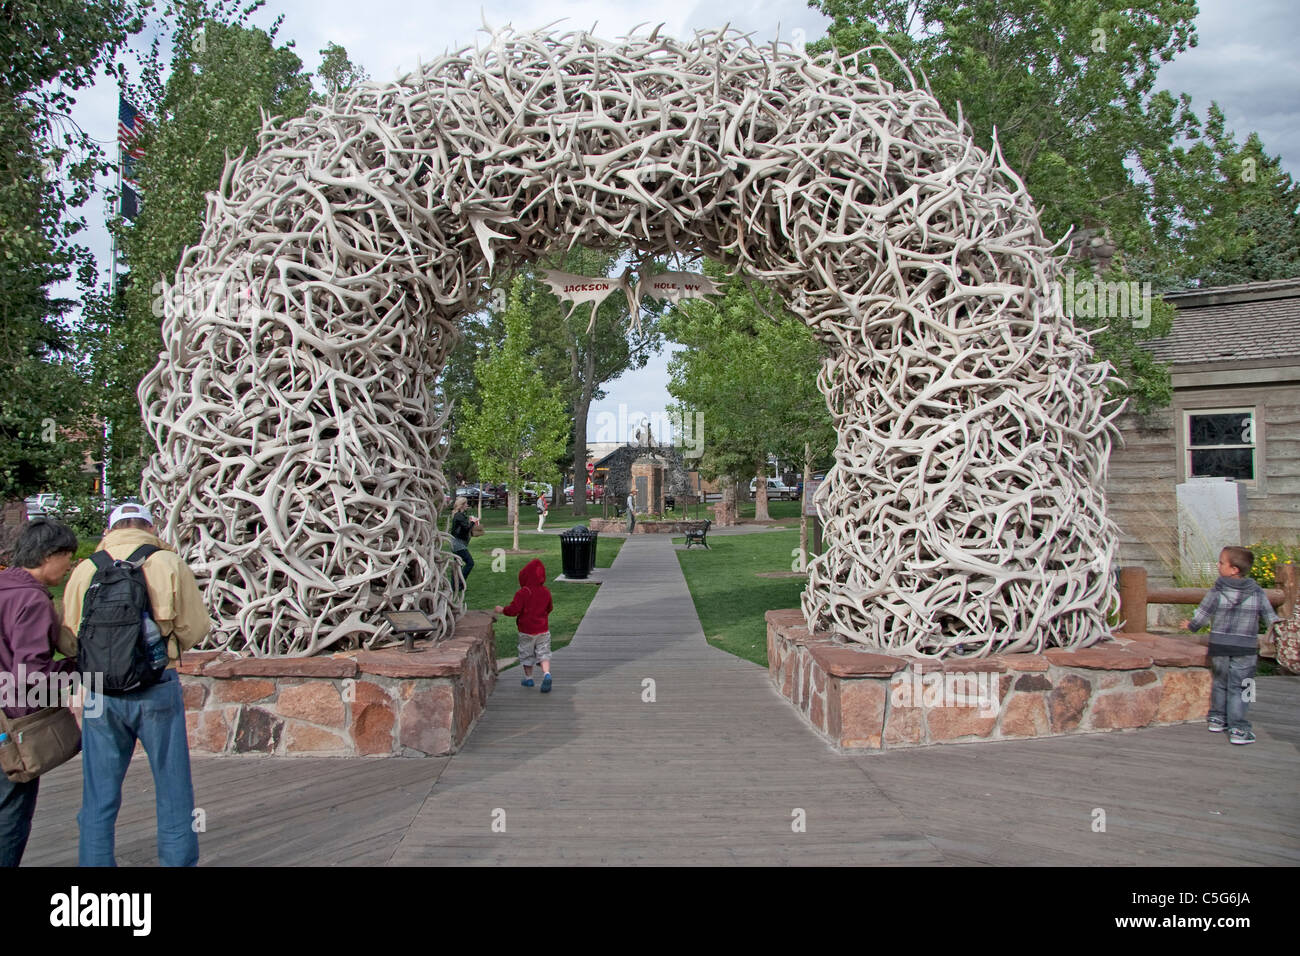 A young child exploring Jackson Hole's unusual Antler Gate. Stock Photo